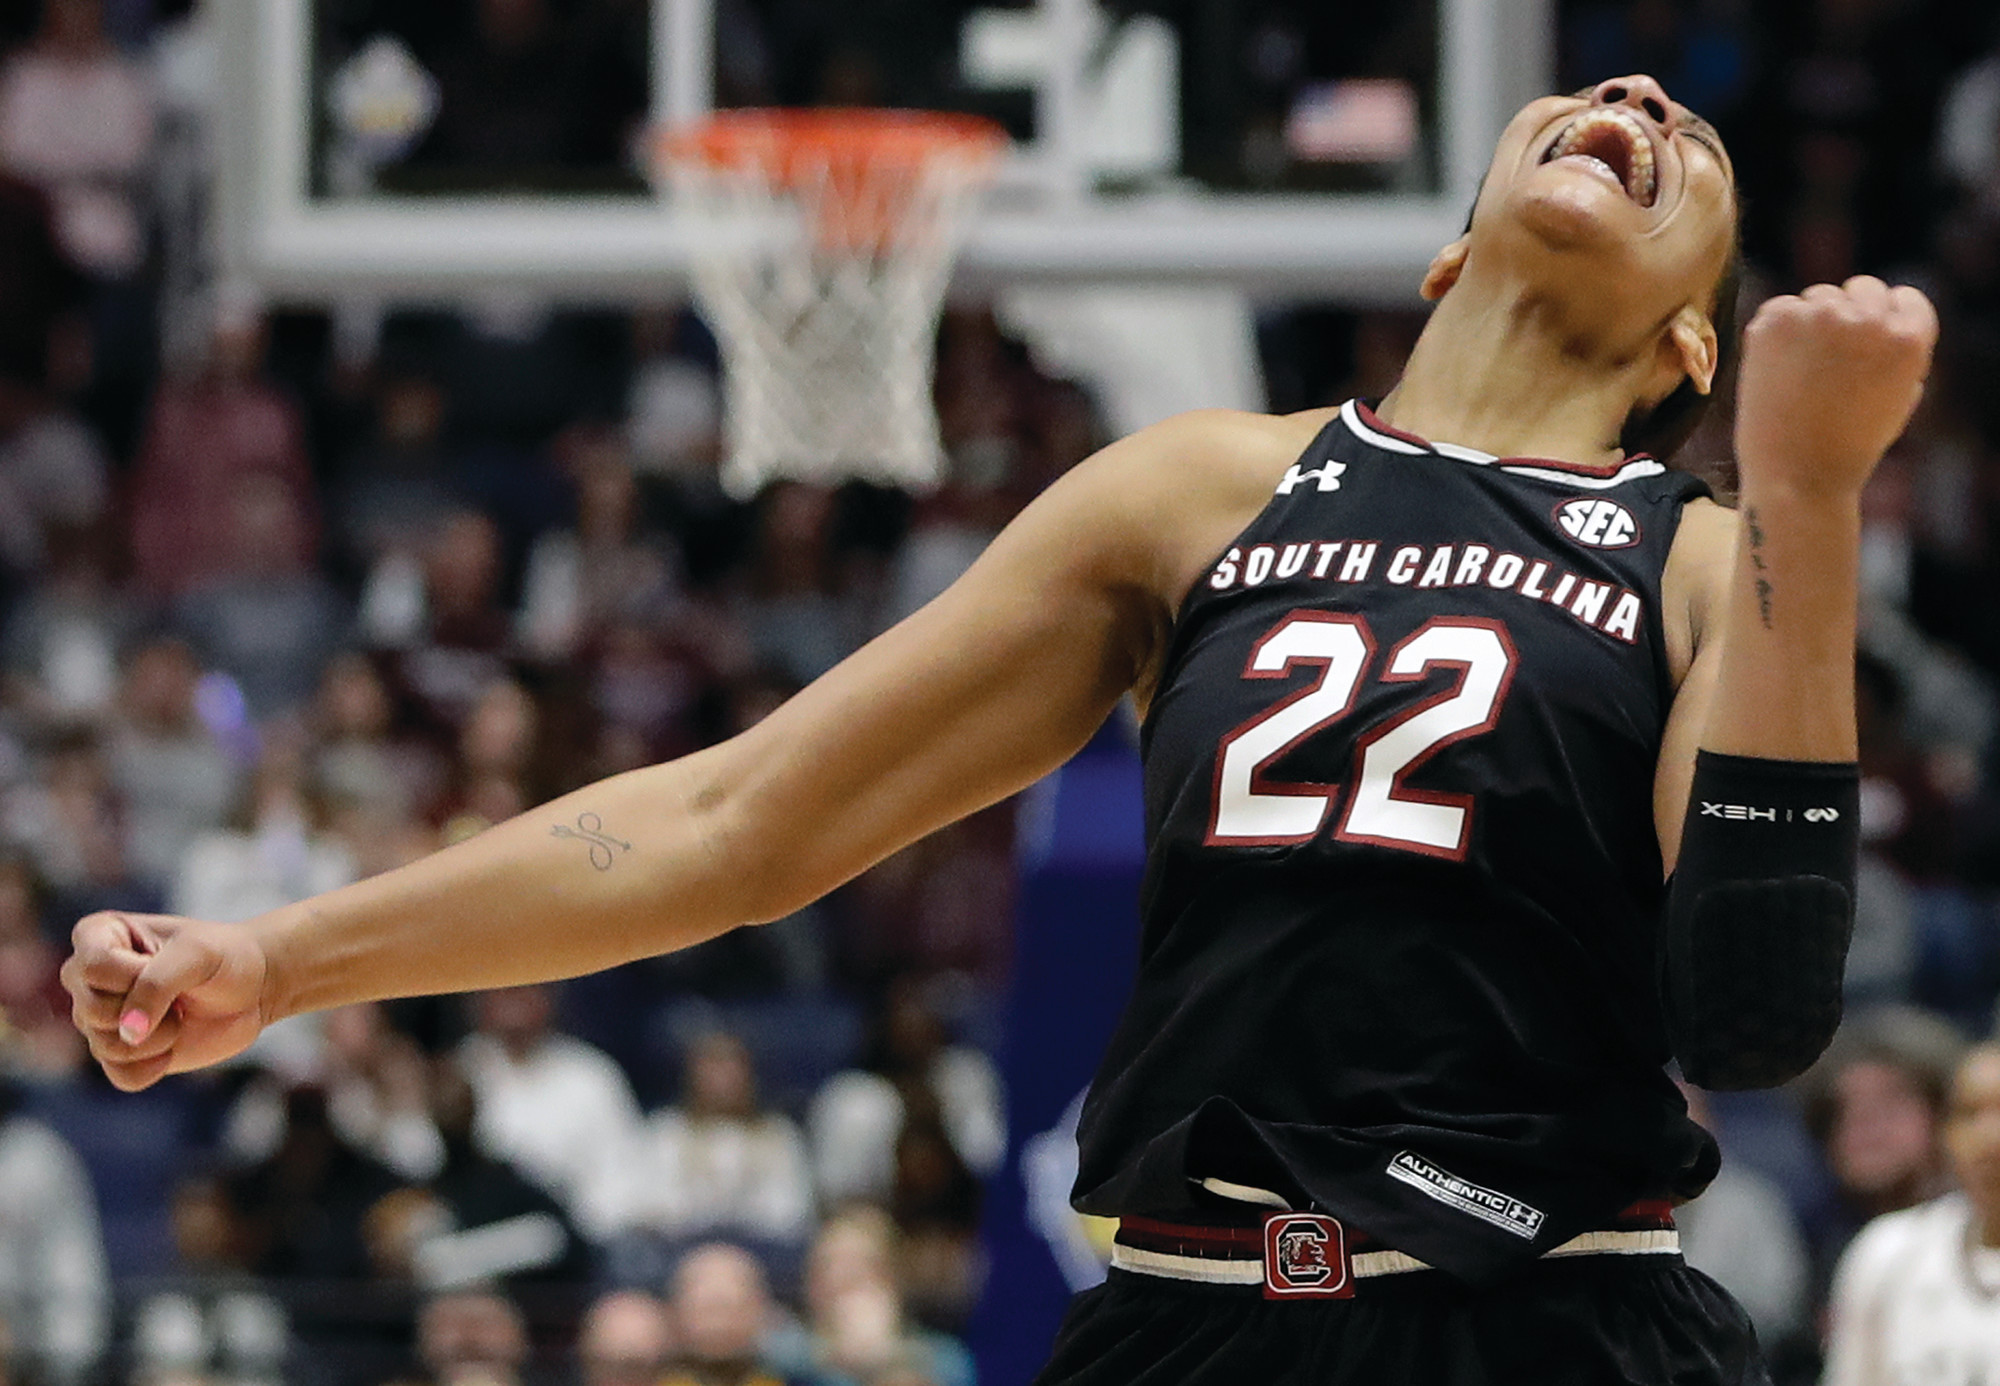 South Carolina forward A'ja Wilson celebrates after her team defeated Mississippi State in the Southeastern Conference tournament championship game on March 4 in Nashville, Tennessee. Wilson is a leading candidate to be named national player of the year.